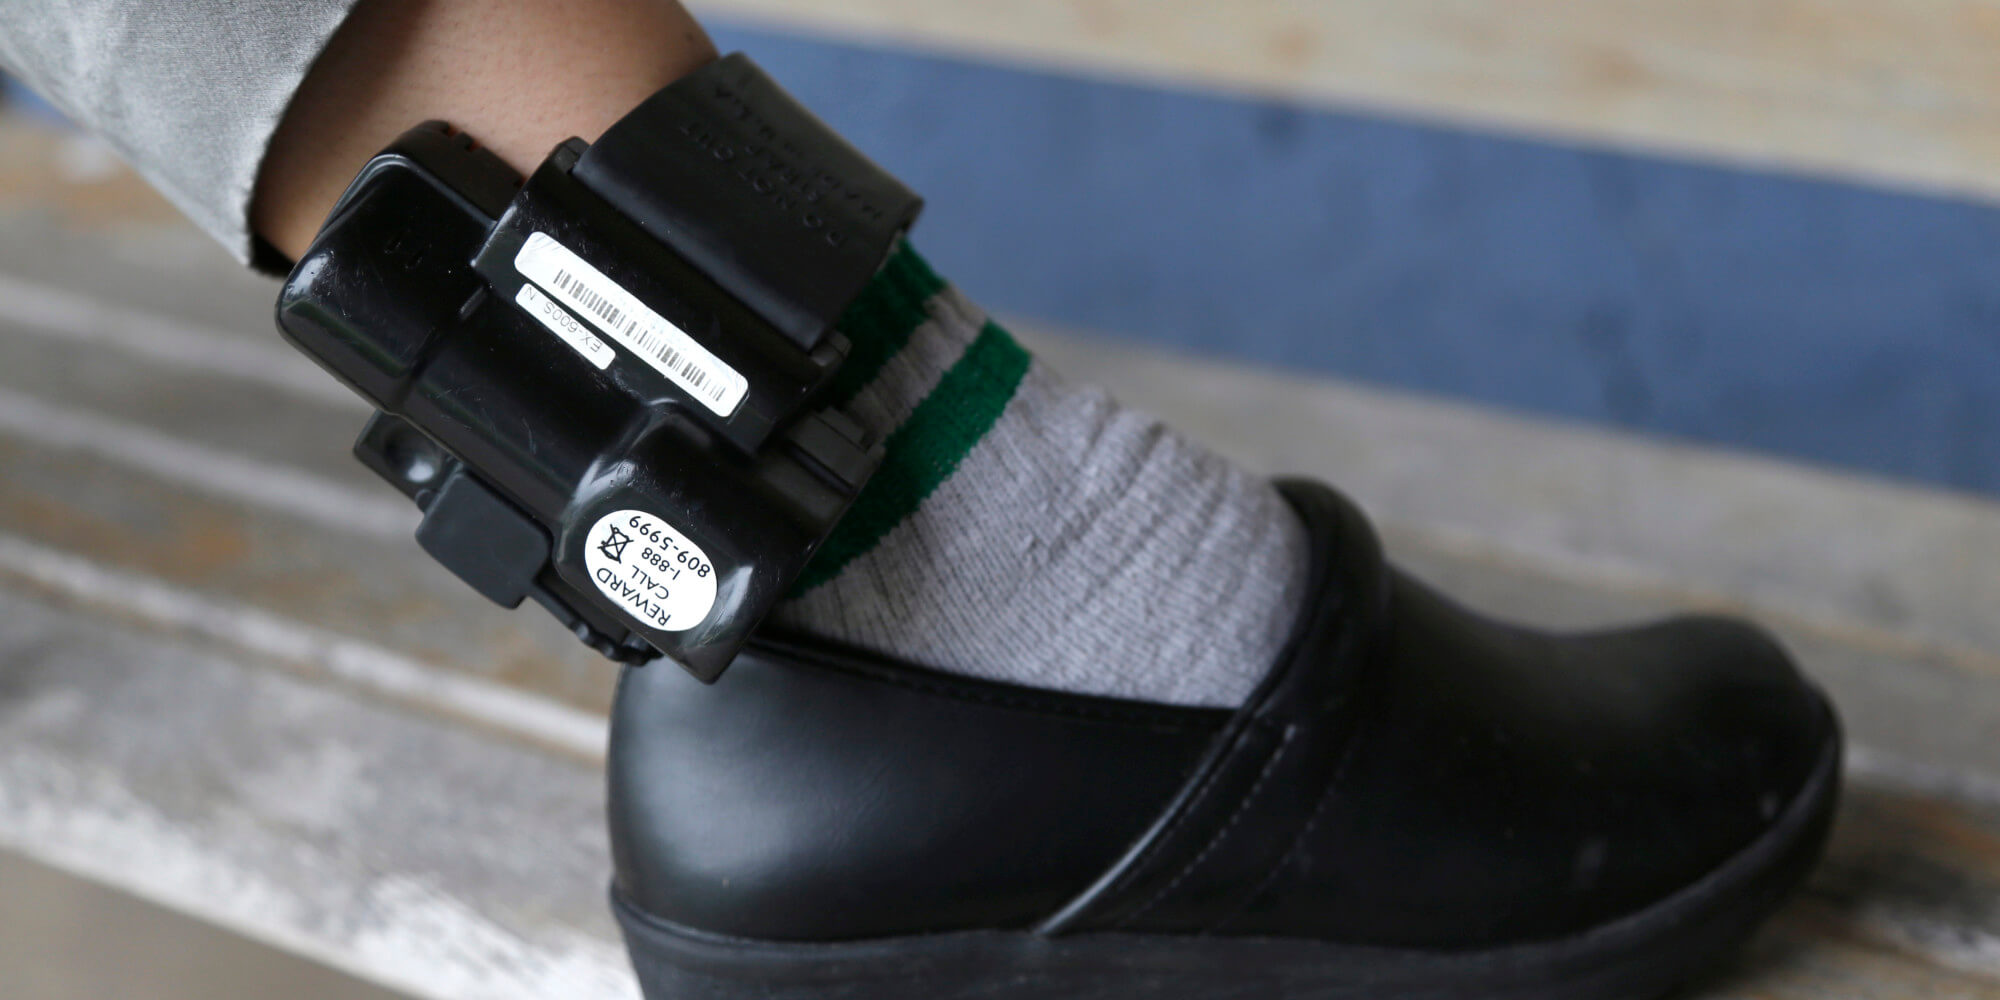 Buggy update crashes ankle monitors in the Netherlands